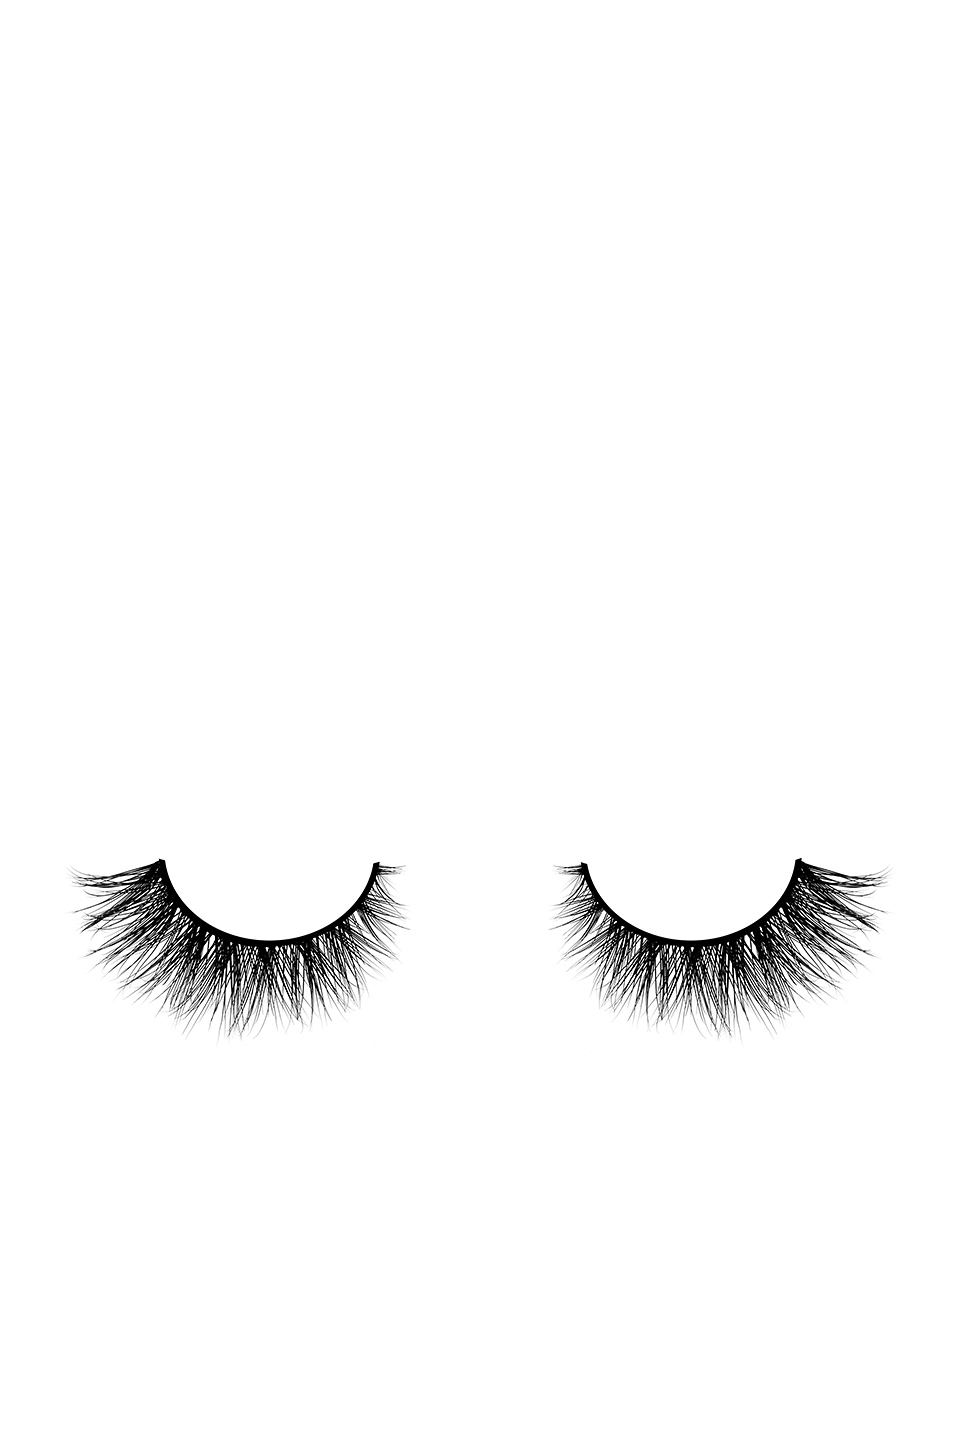 Velour Lashes Take It And Go Mink Lashes in